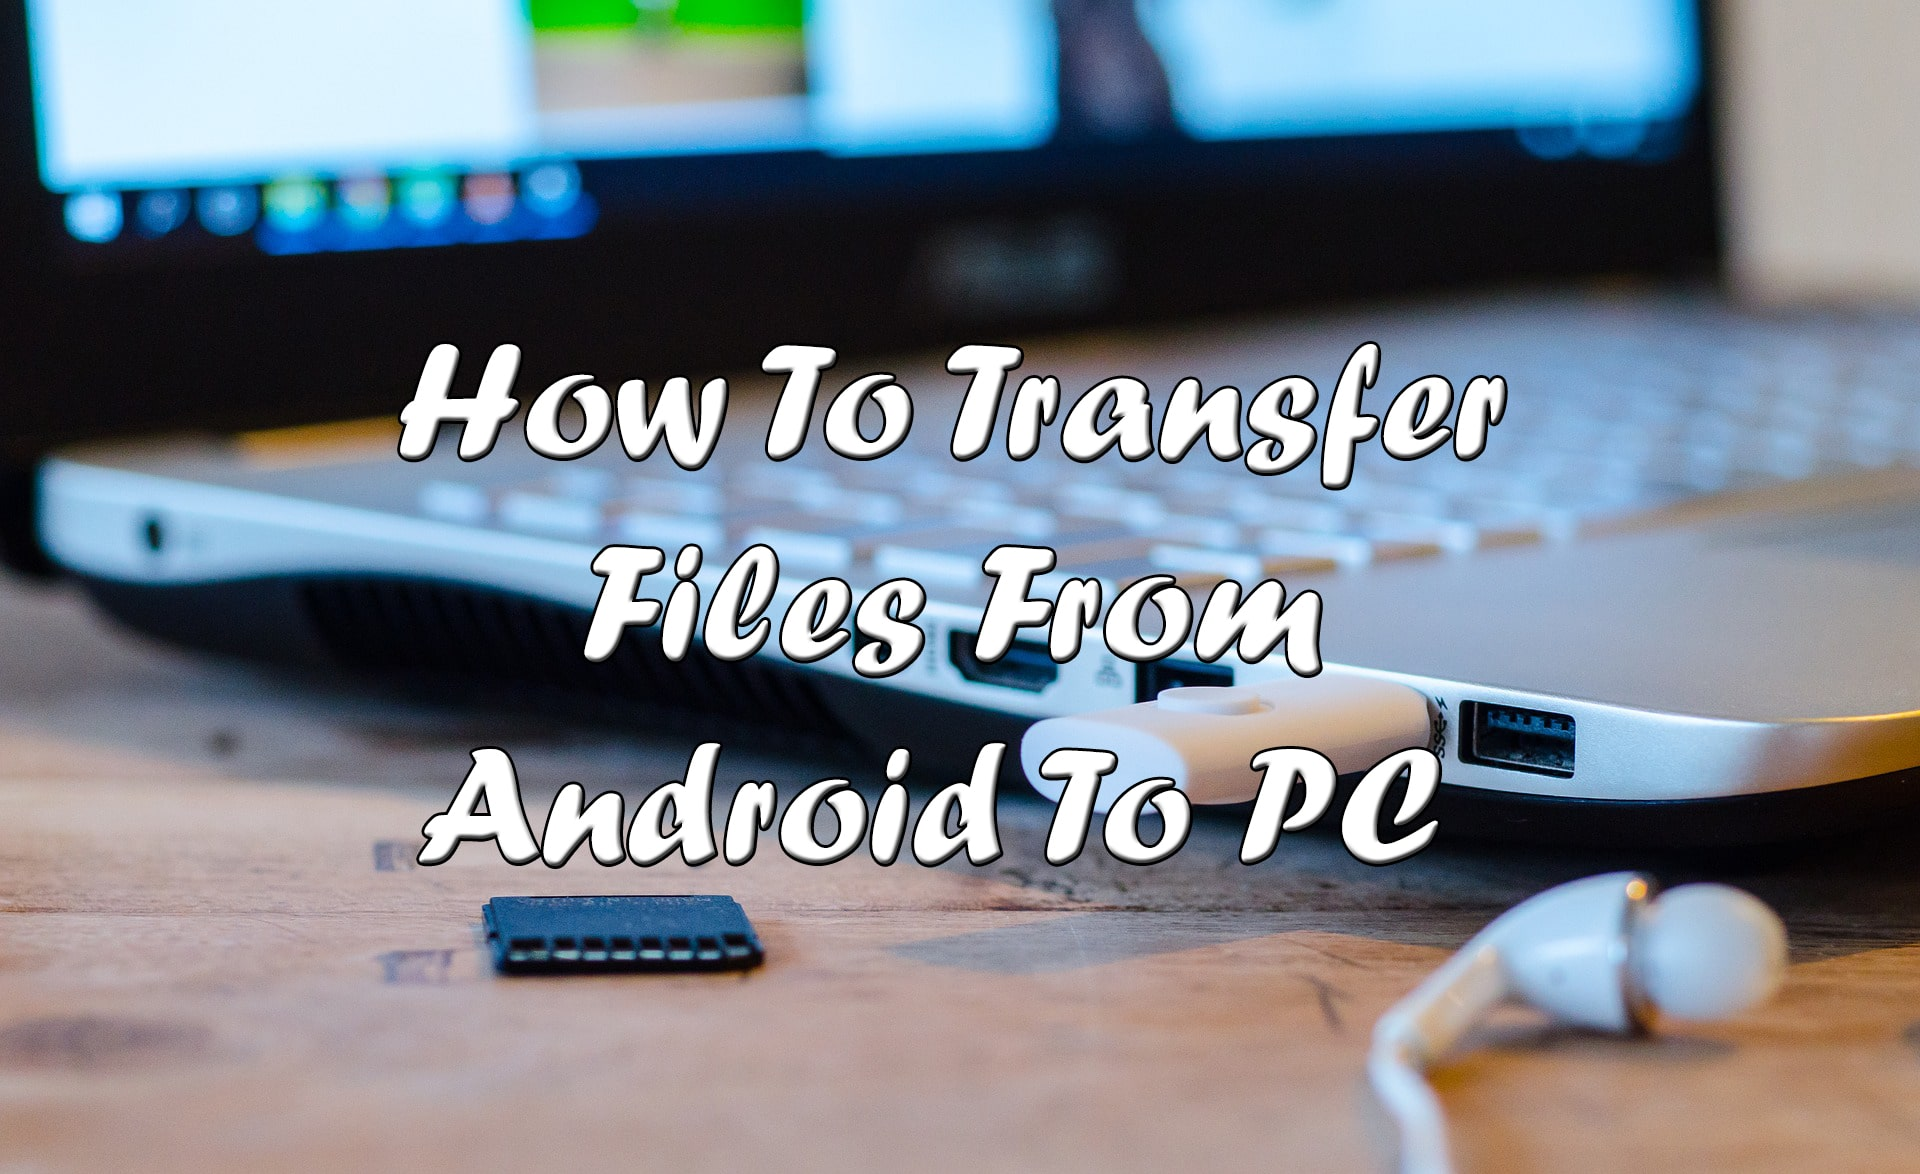 Transfer File From Android To PC